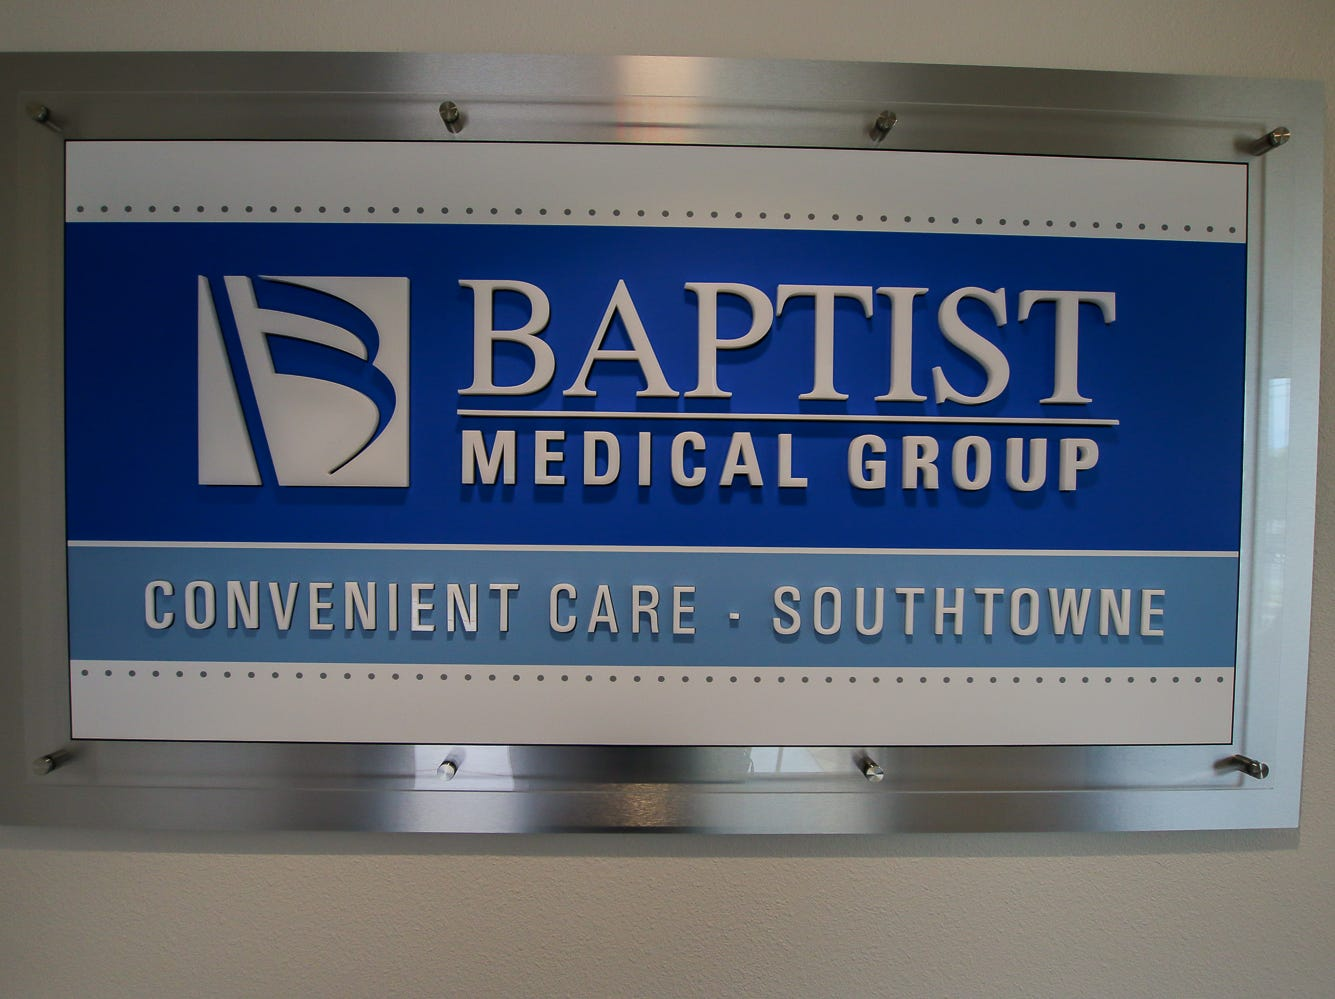 Baptist Medical Group hosts an open house for its new Convenient Care Southtowne walk-in clinic in downtown Pensacola on Thursday, August 9, 2018. Located across from the YMCA near the S. Tarragona intersection at 190 E. Intendencia St., the clinic will be open from 8 a.m. to 5 p.m. Monday through Friday.